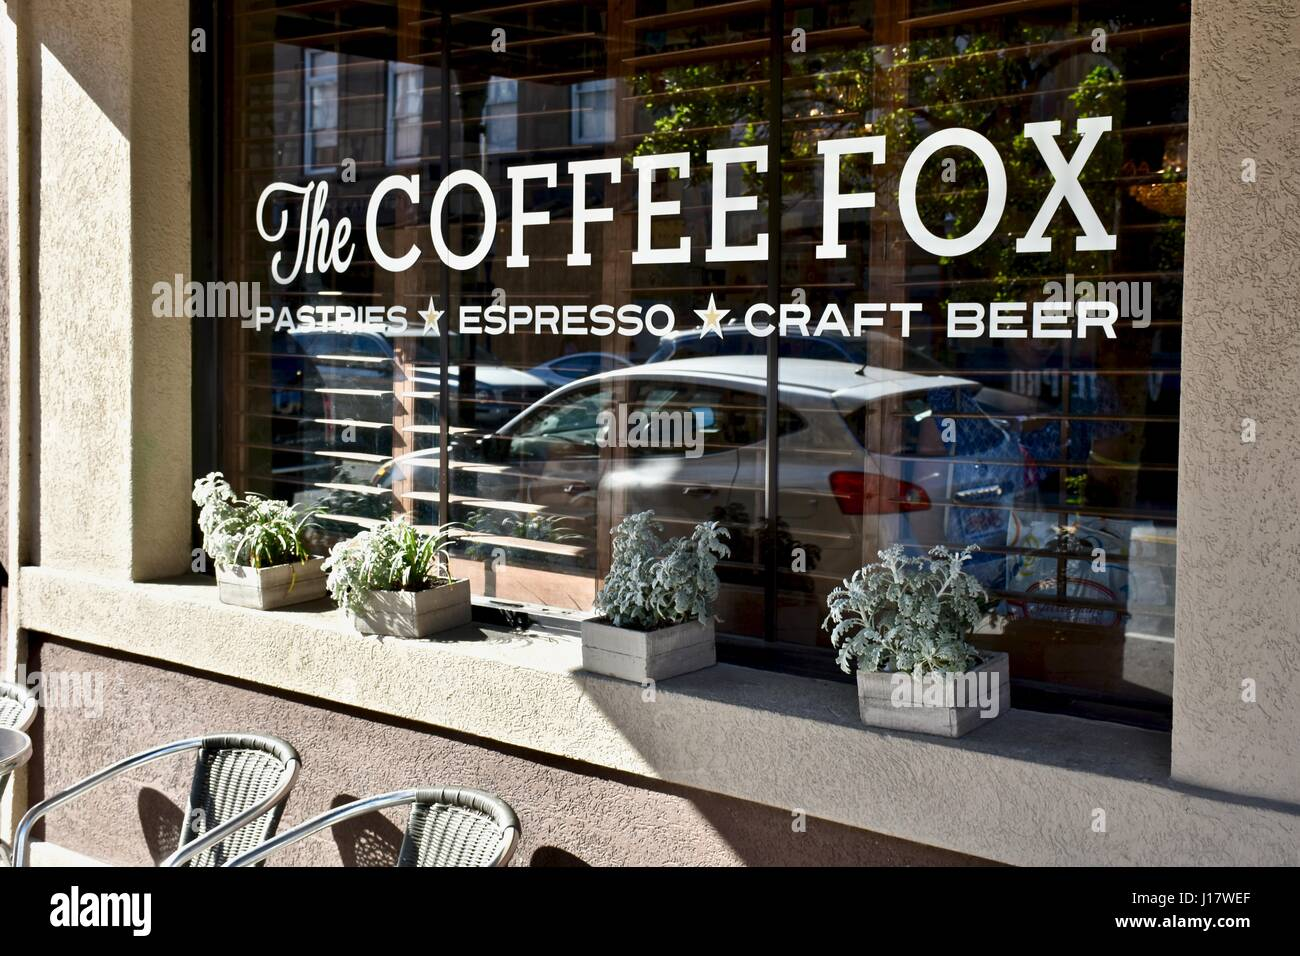 coffee fox pasties espresso and beer savannah georgia stock photo